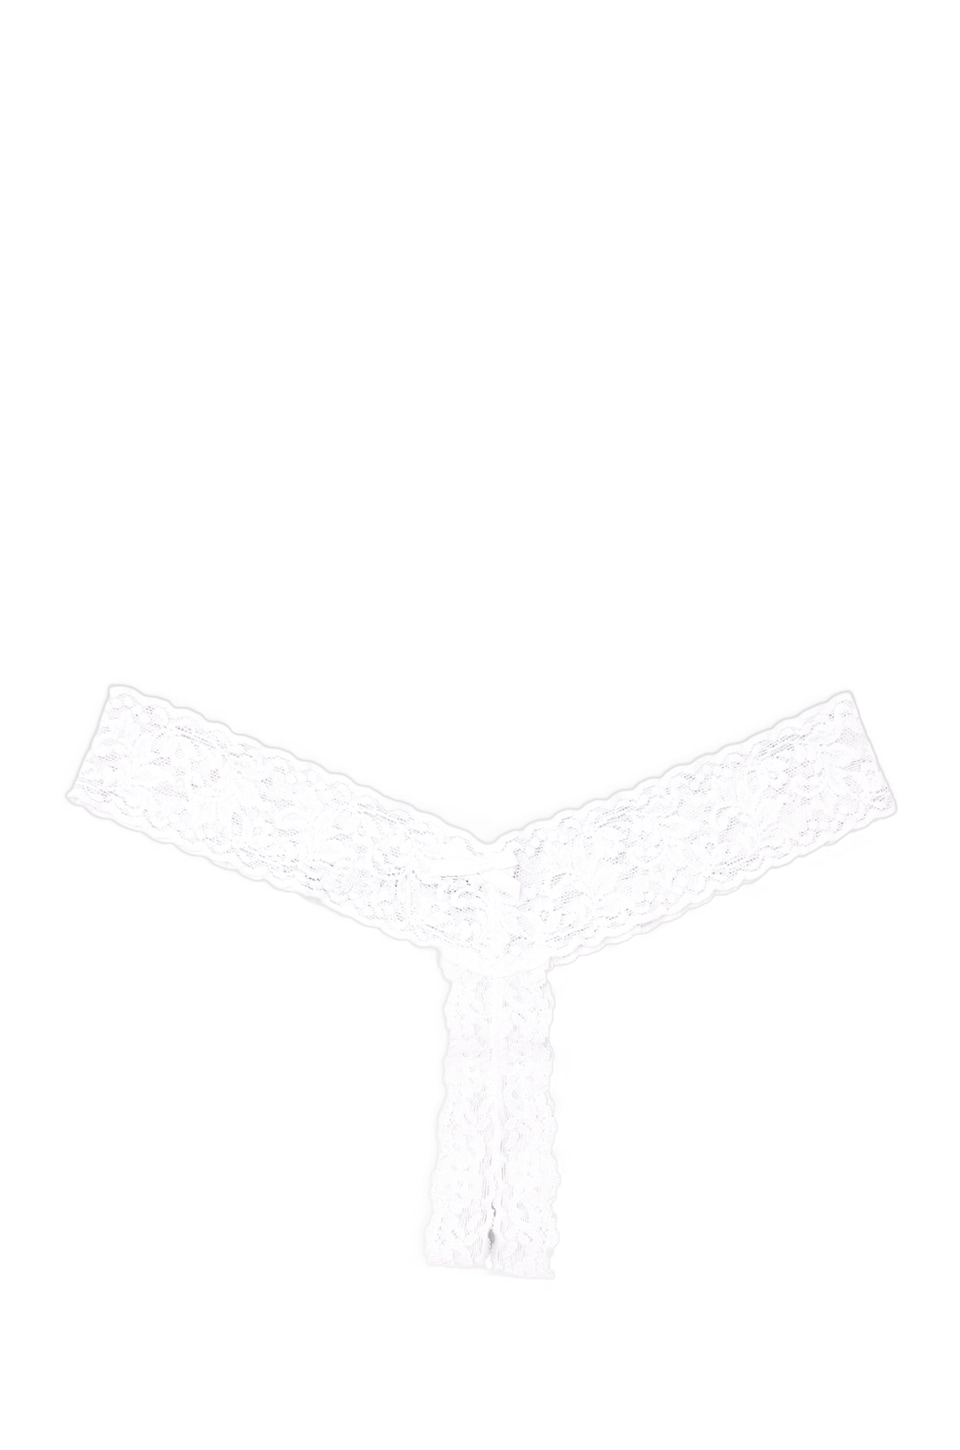 Hanky Panky AFTER MIDNIGHT Open Crotch Low Rise Thong in White